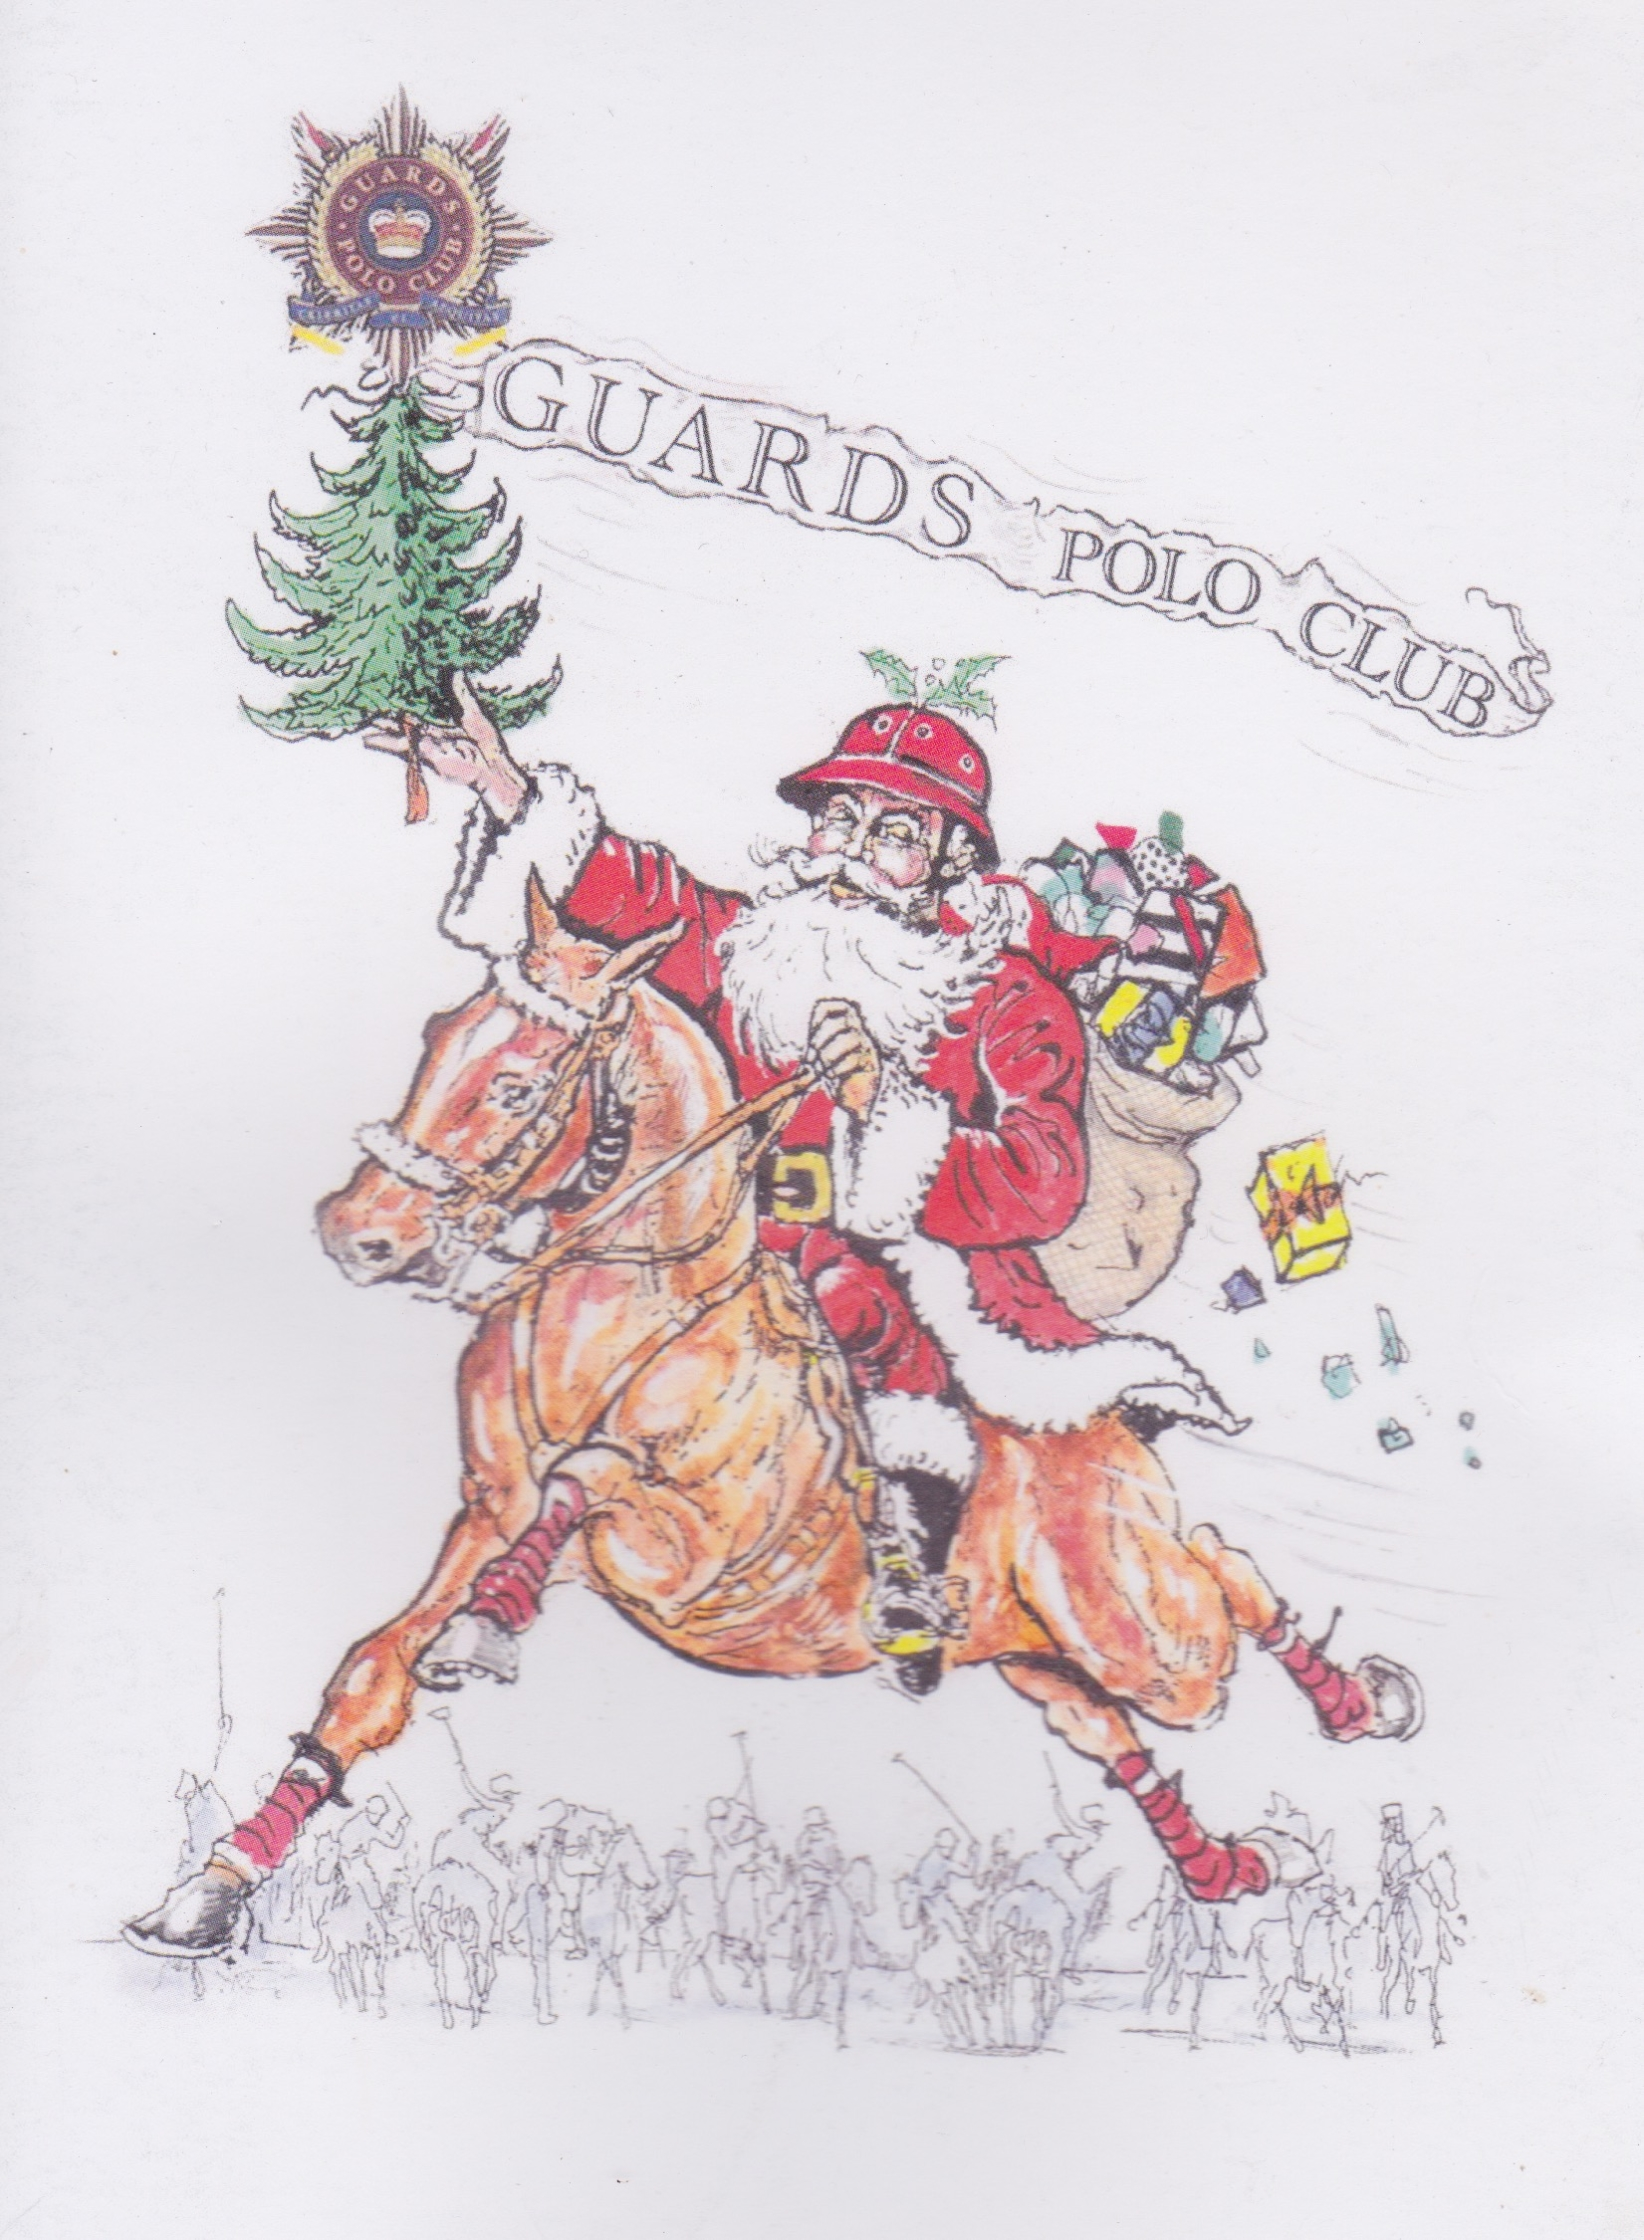 Chris Price Card for Guards Polo Club.jpg